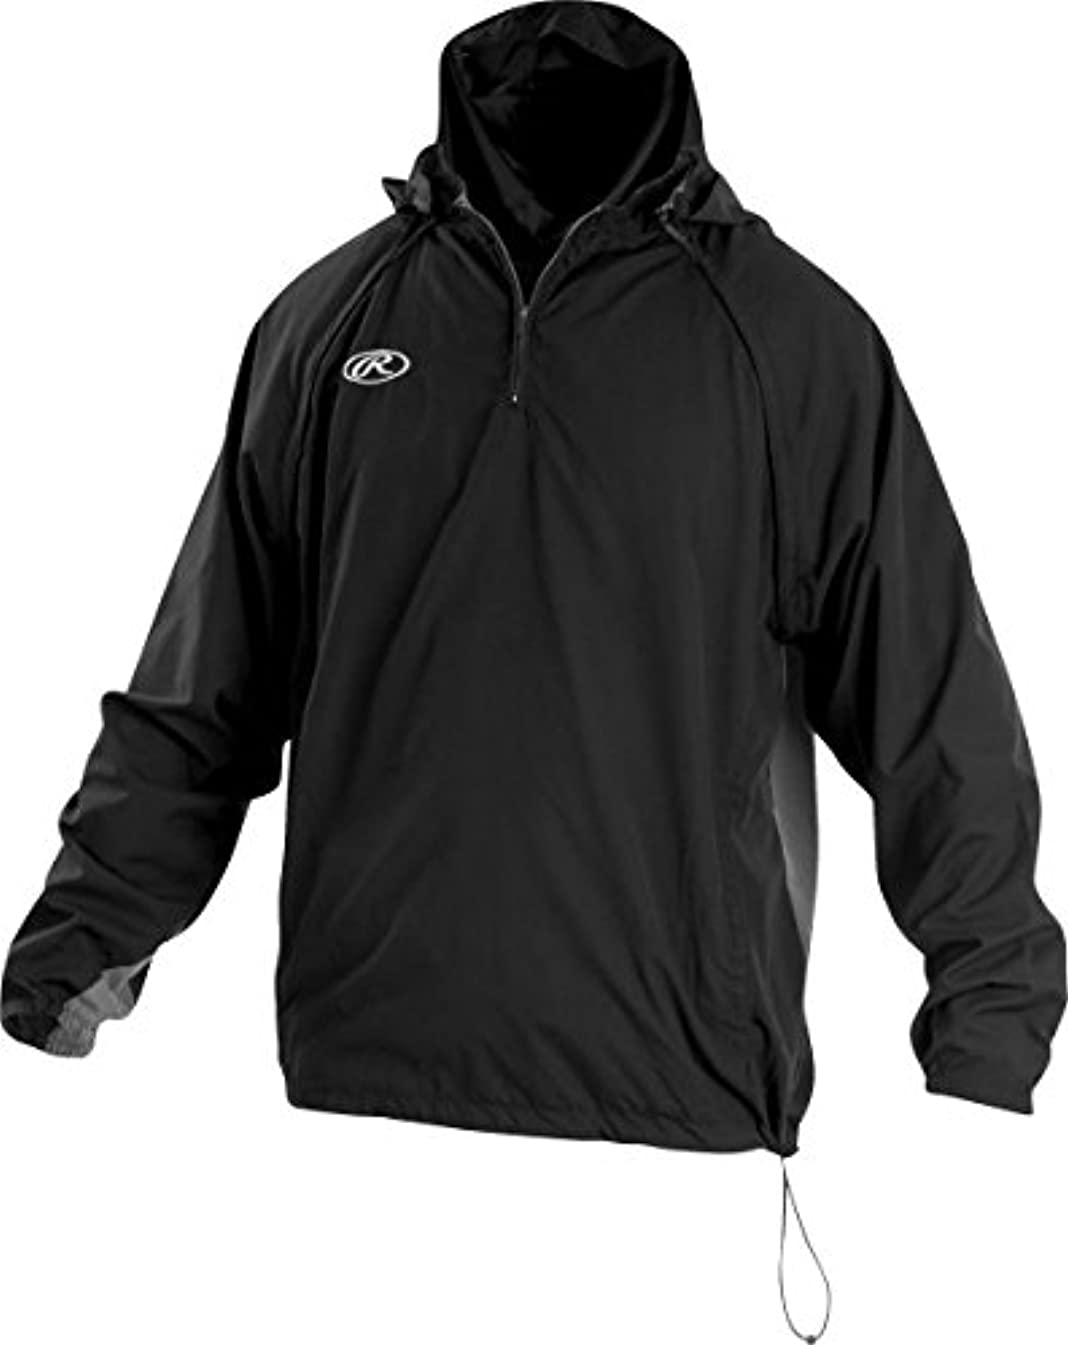 Rawlings Sporting Goods Boys Youth Jacket W Removable Sleeves & Hood